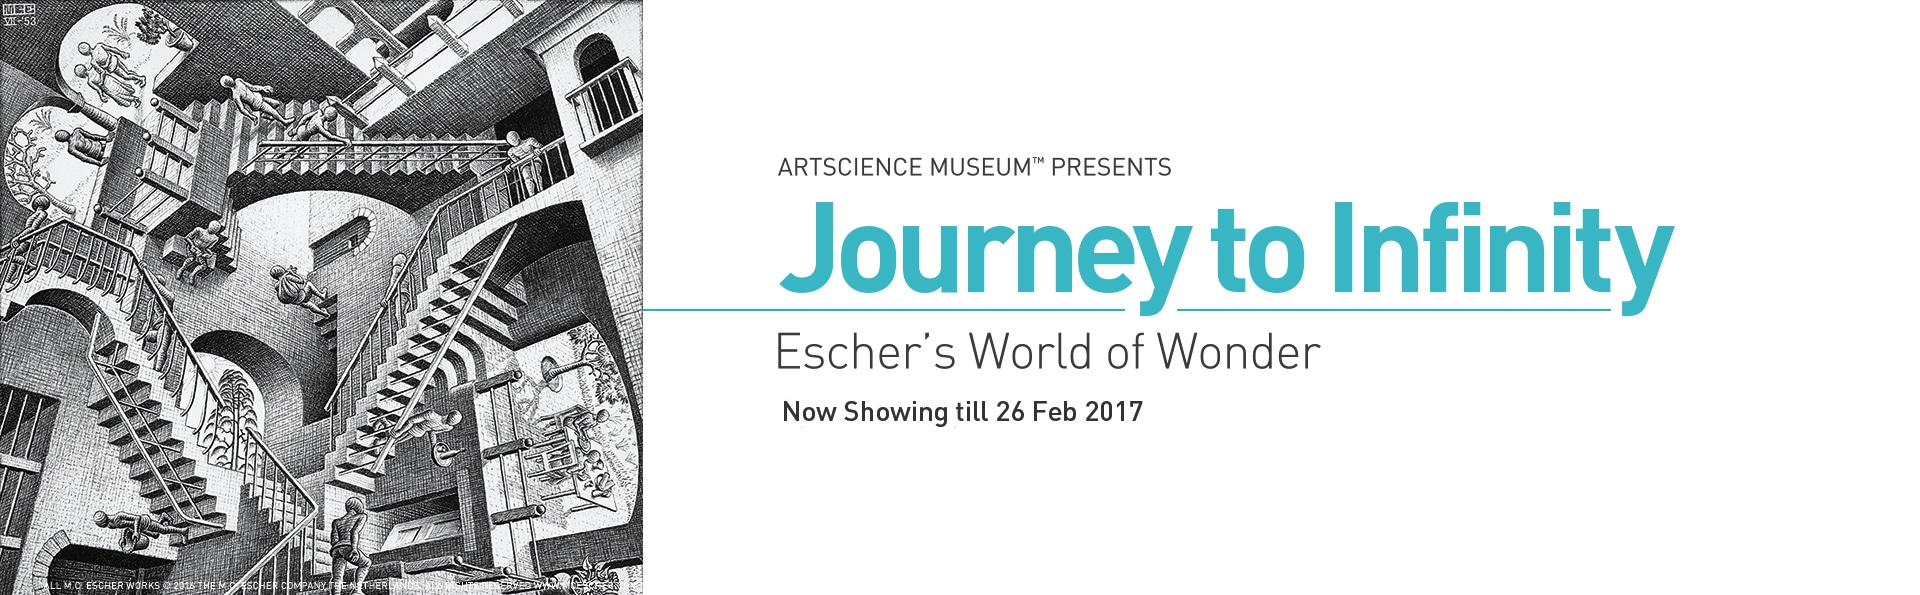 M.C.Escher exhibition at ArtScience Museum